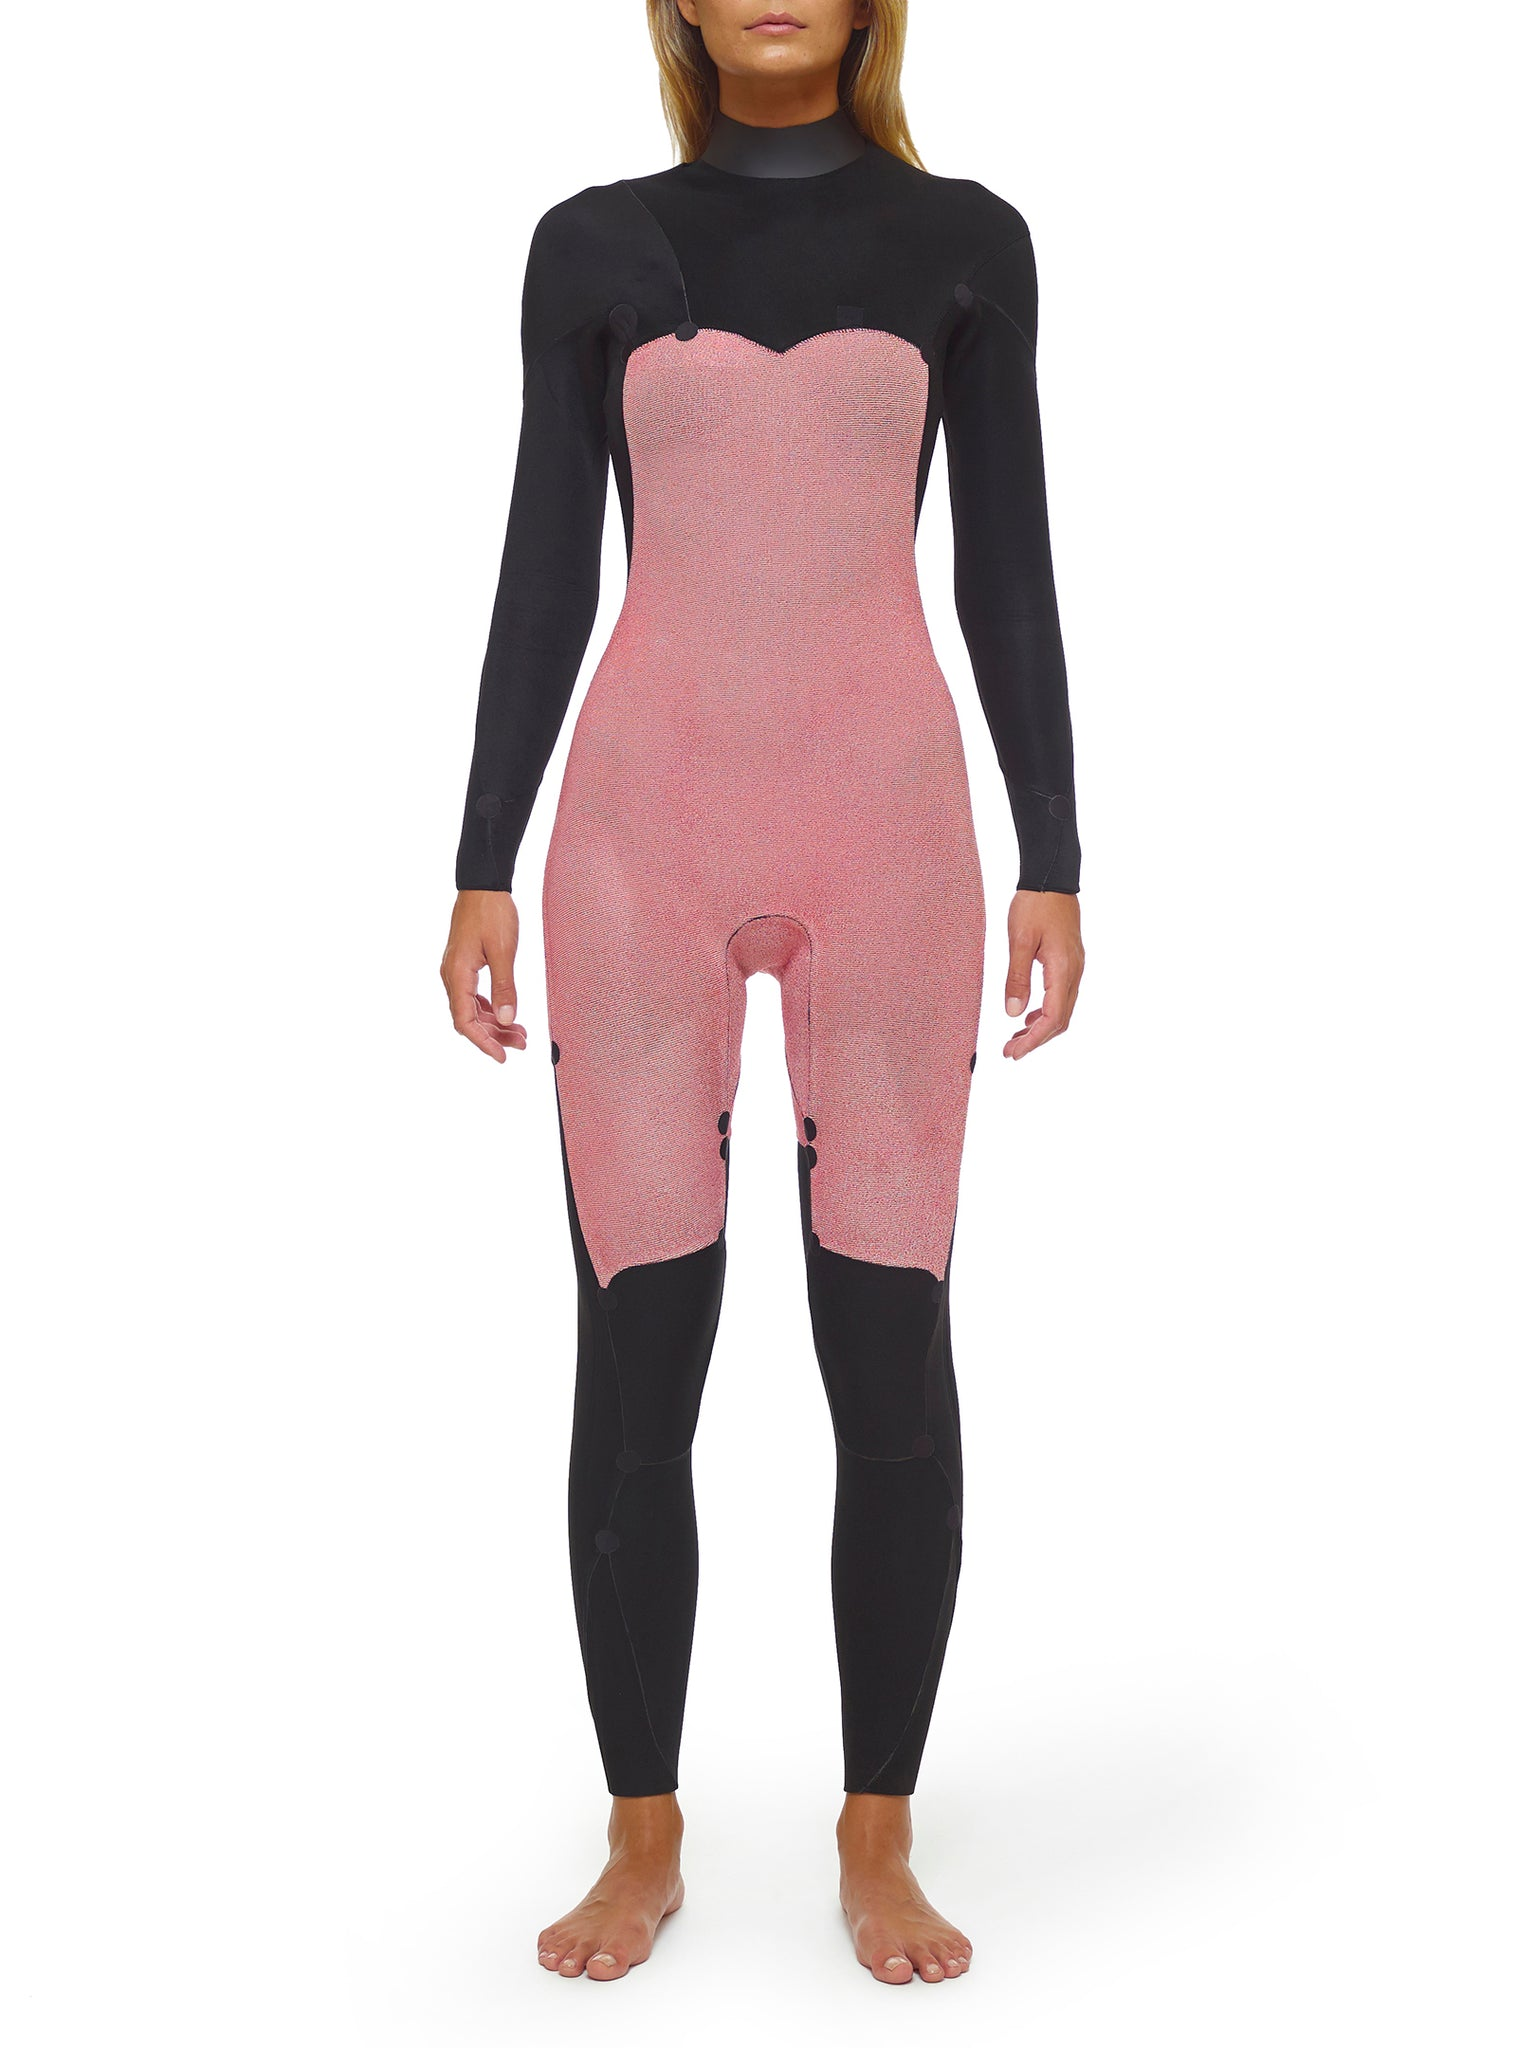 Wetsuit Woman Performance 4/3 Chest Zip Black